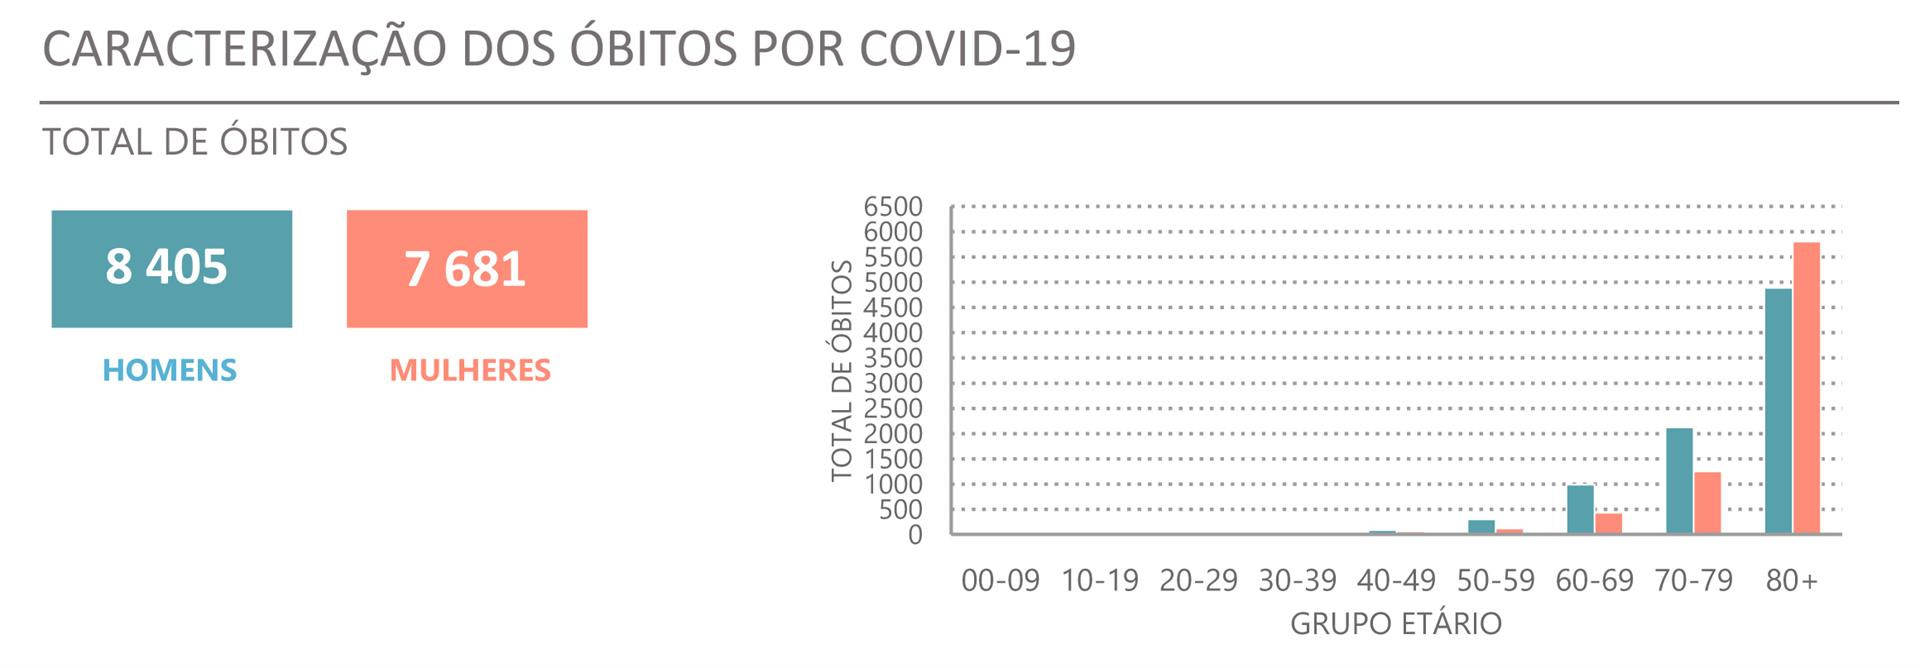 310 fewer hospitalized days with 63 more deaths from covid-19